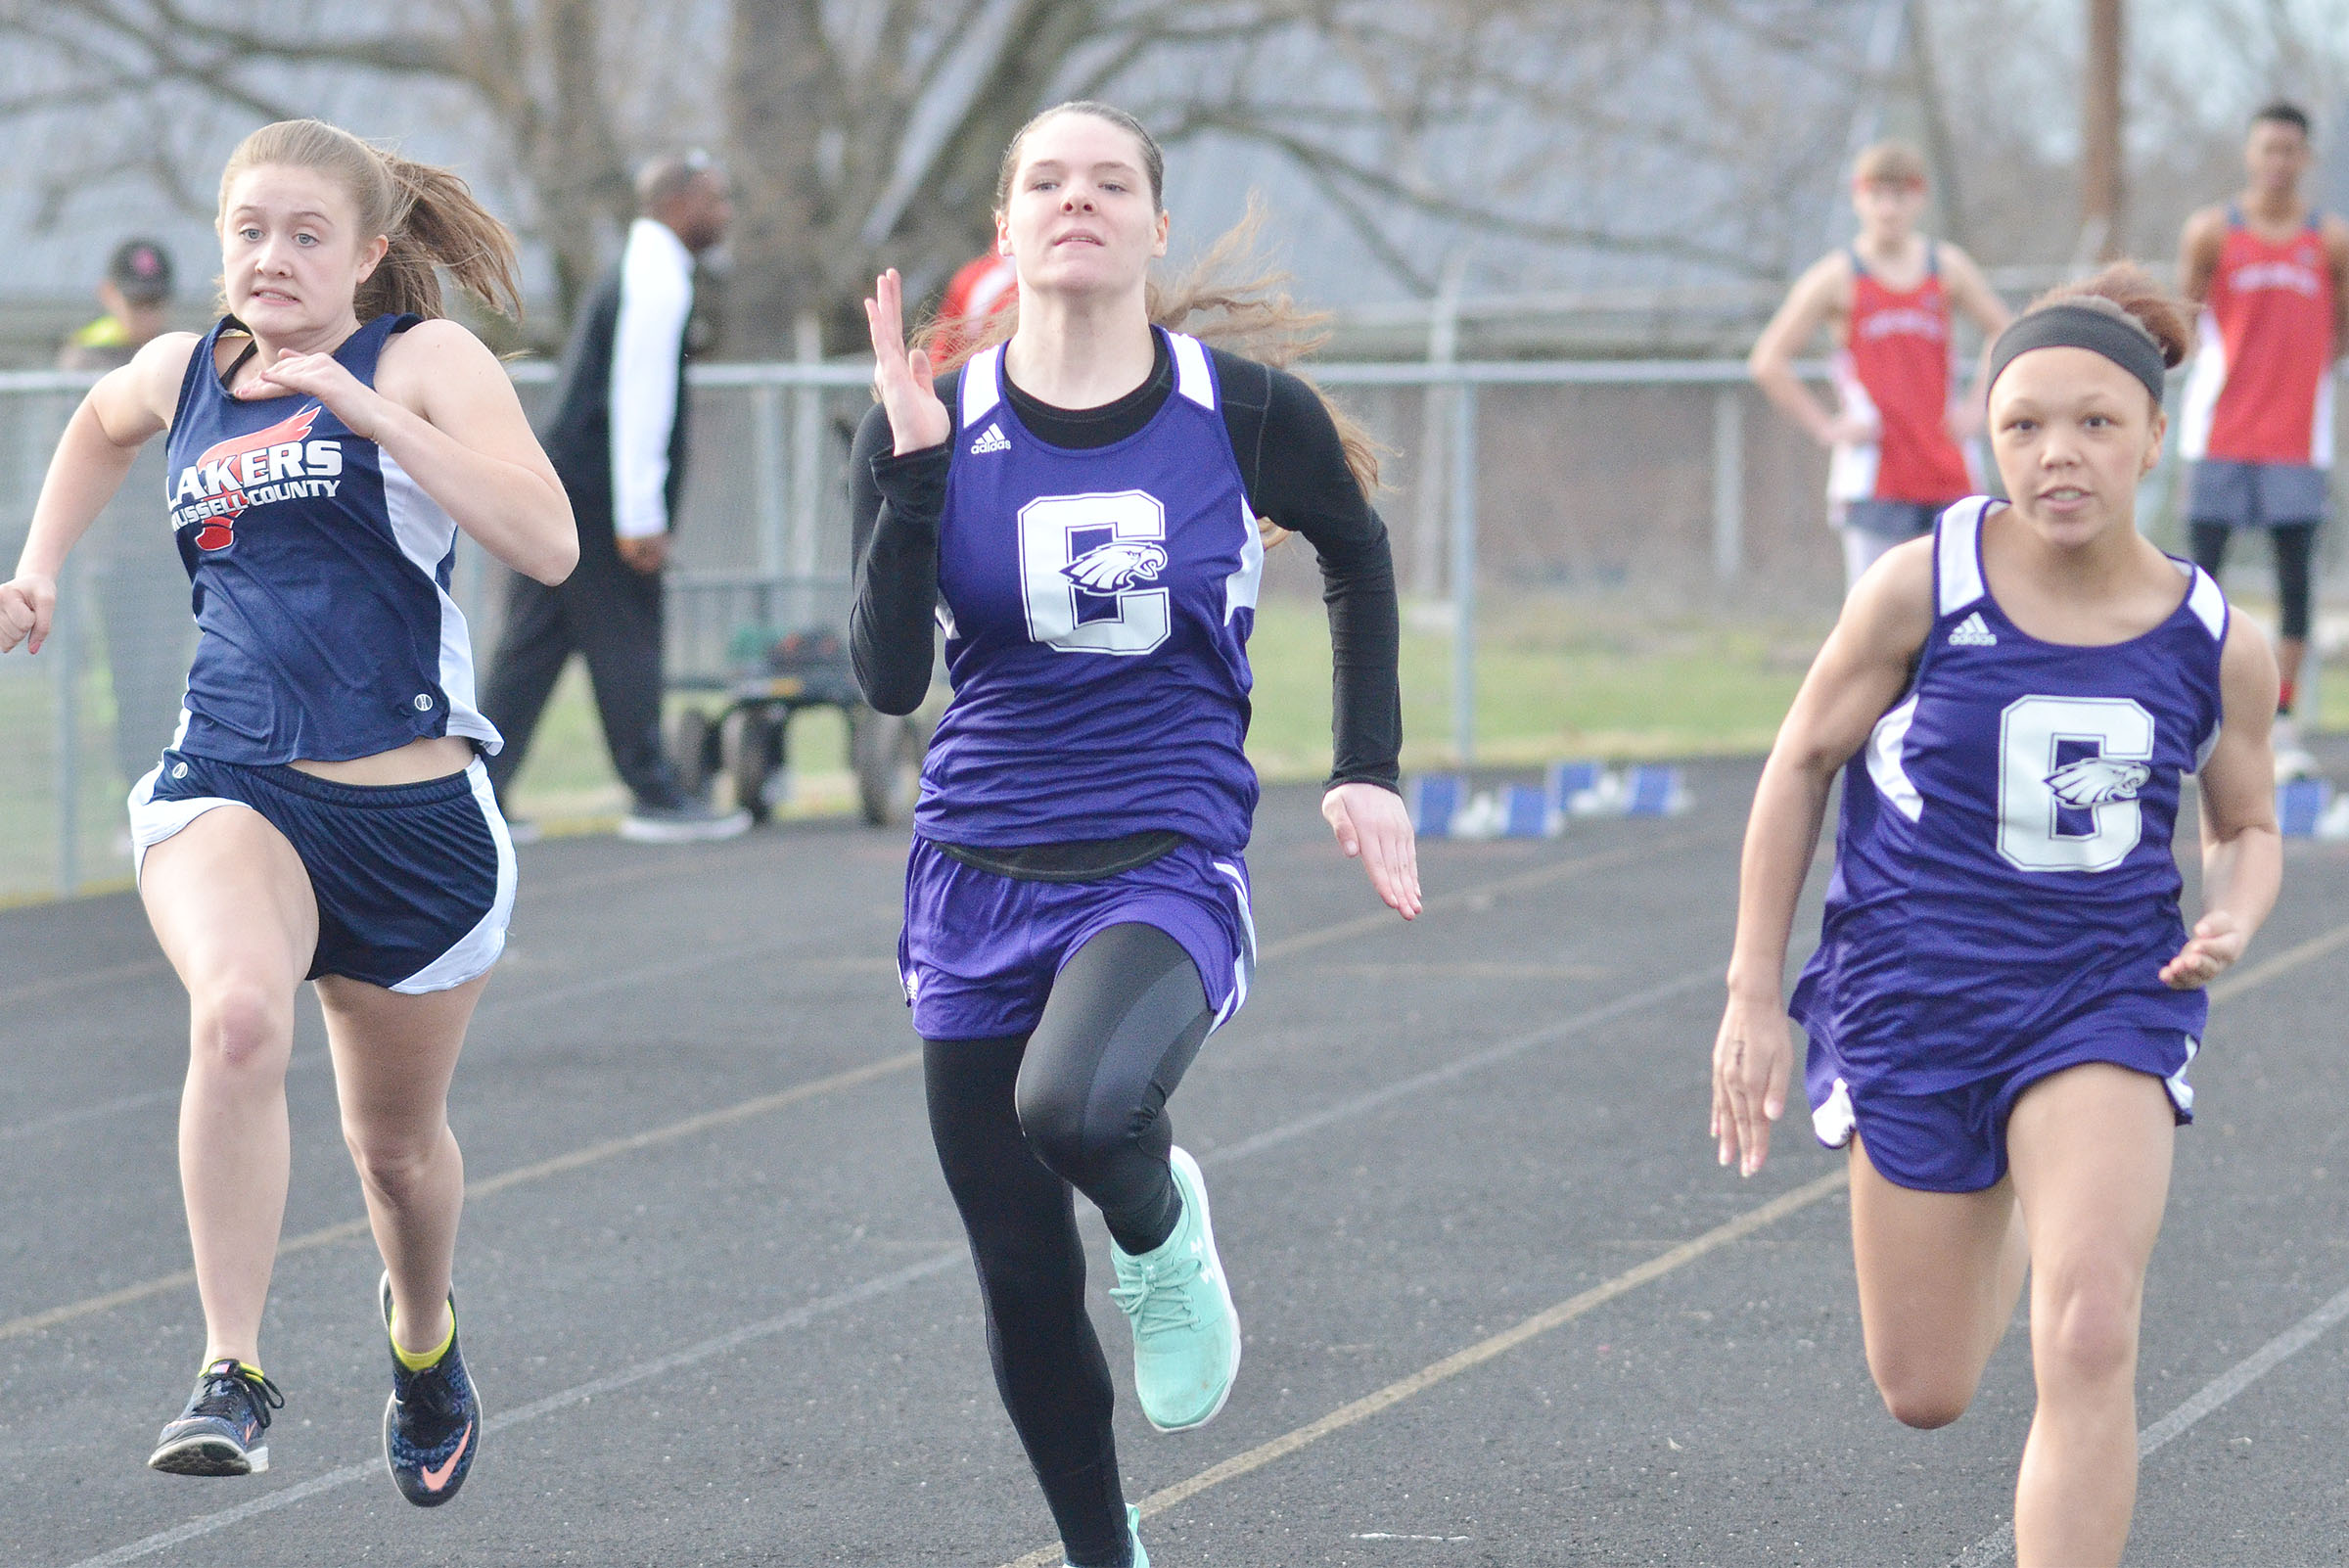 CHS sophomore Cassi Pipes, center, and CMS seventh-grader Kitana Taylor run.